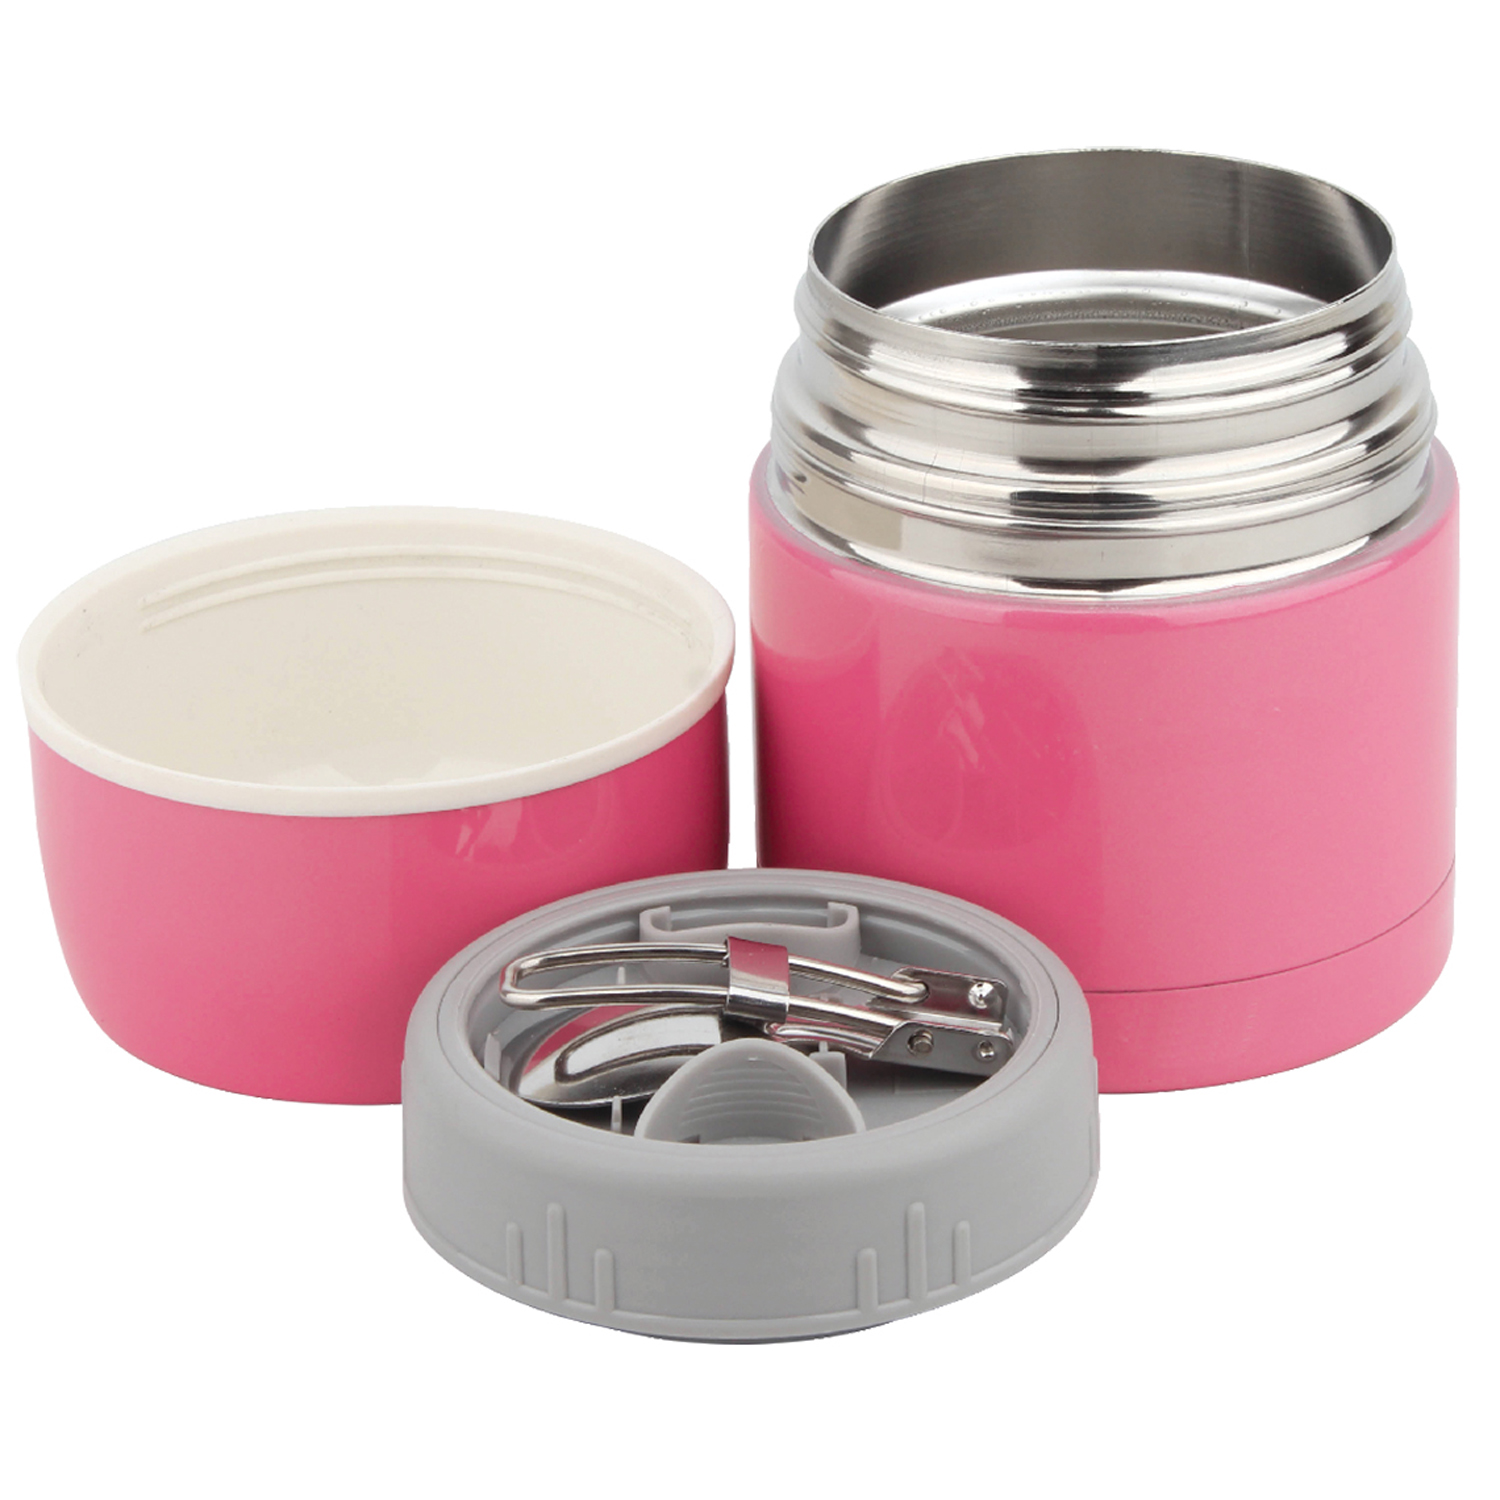 Stainless Steel Soup Flask With Spoon 063756